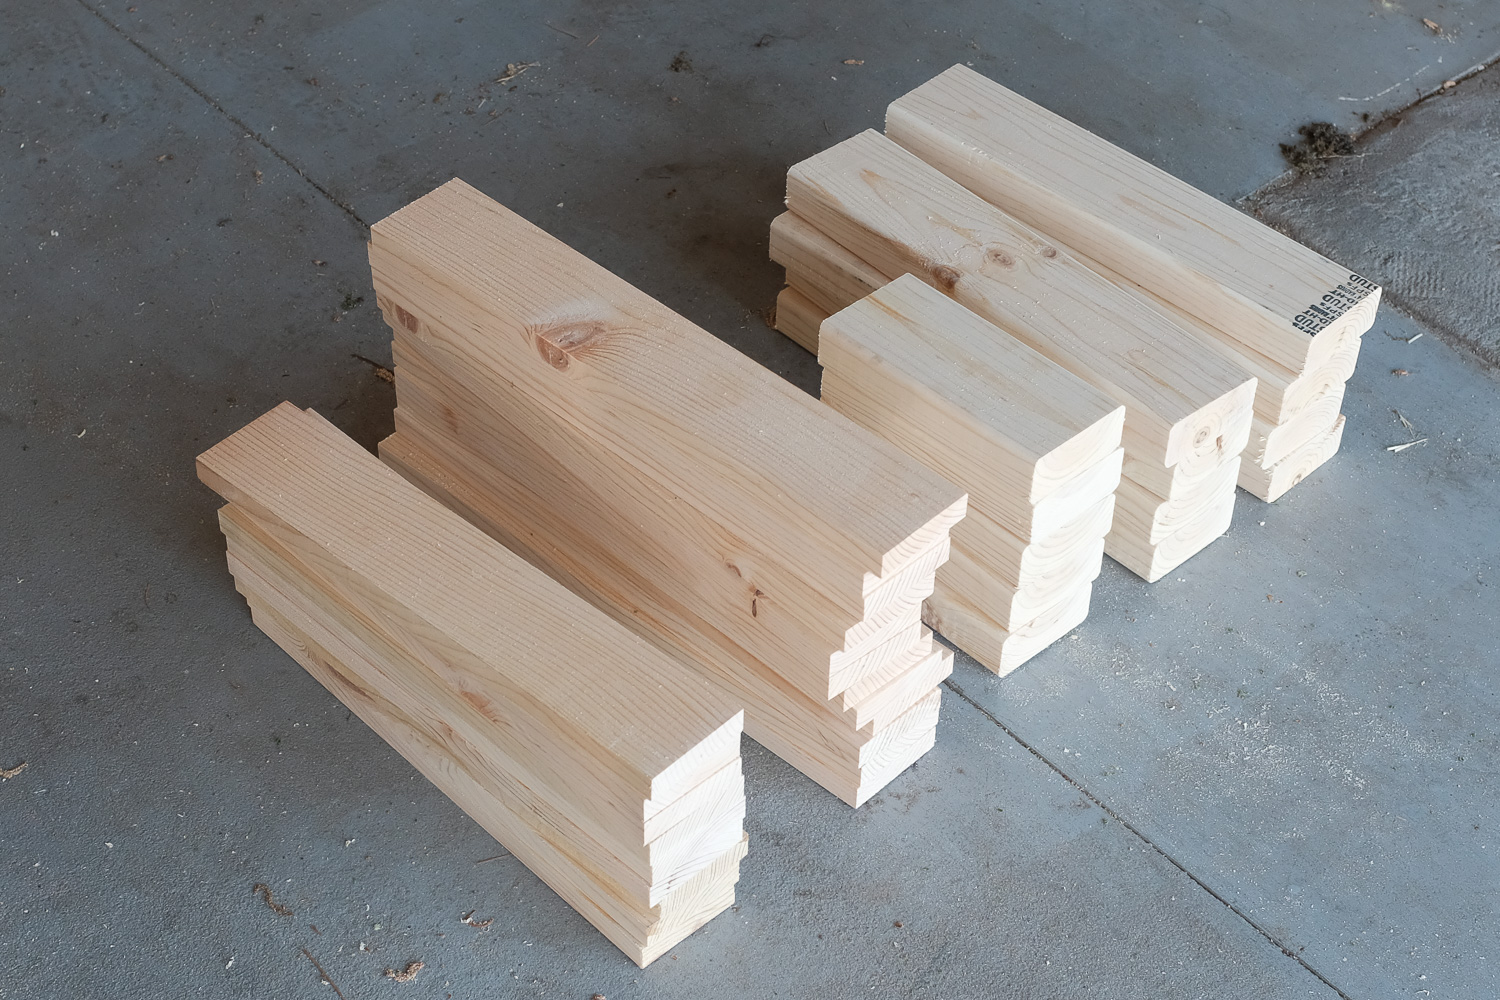 Image: It's a lot easier to cut everything first and then assemble the bench all at once.